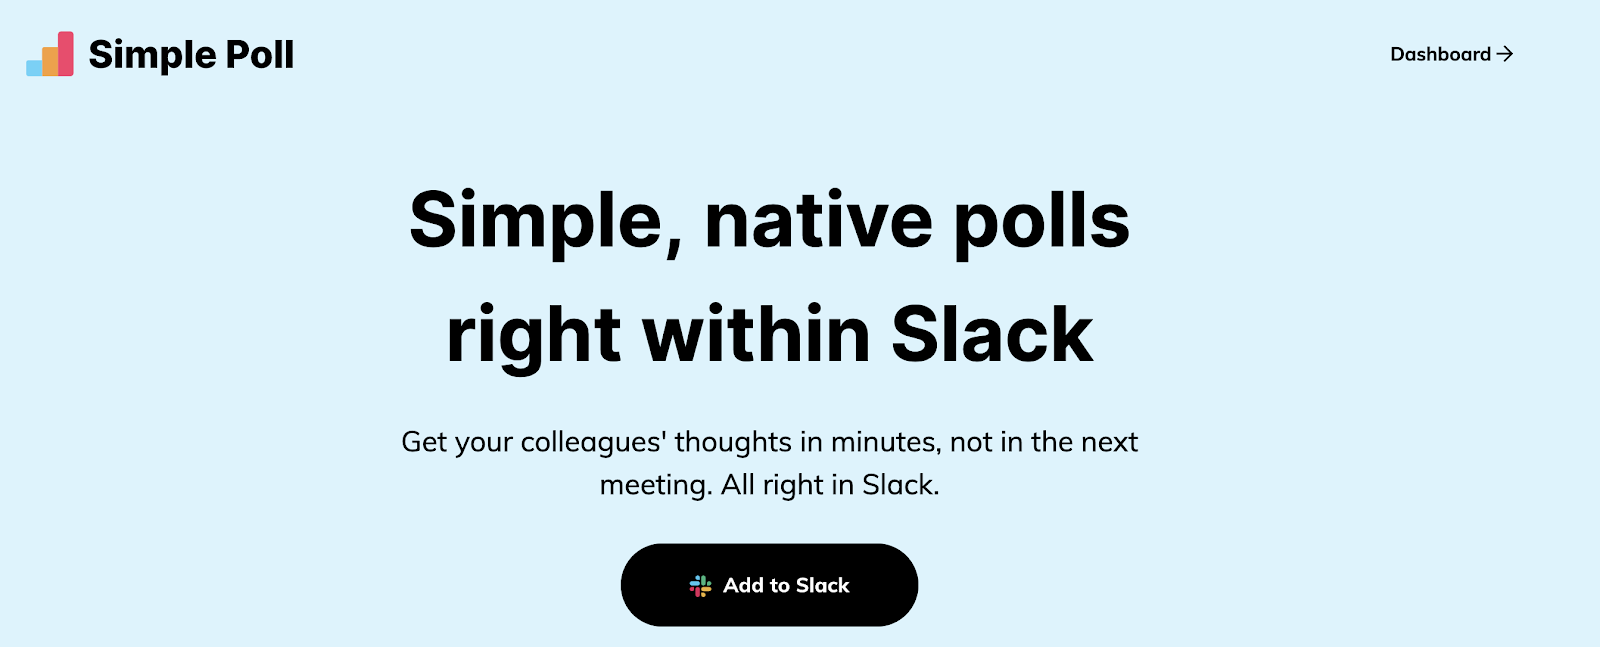 Simple Poll: Simple, native polls right within Slack.